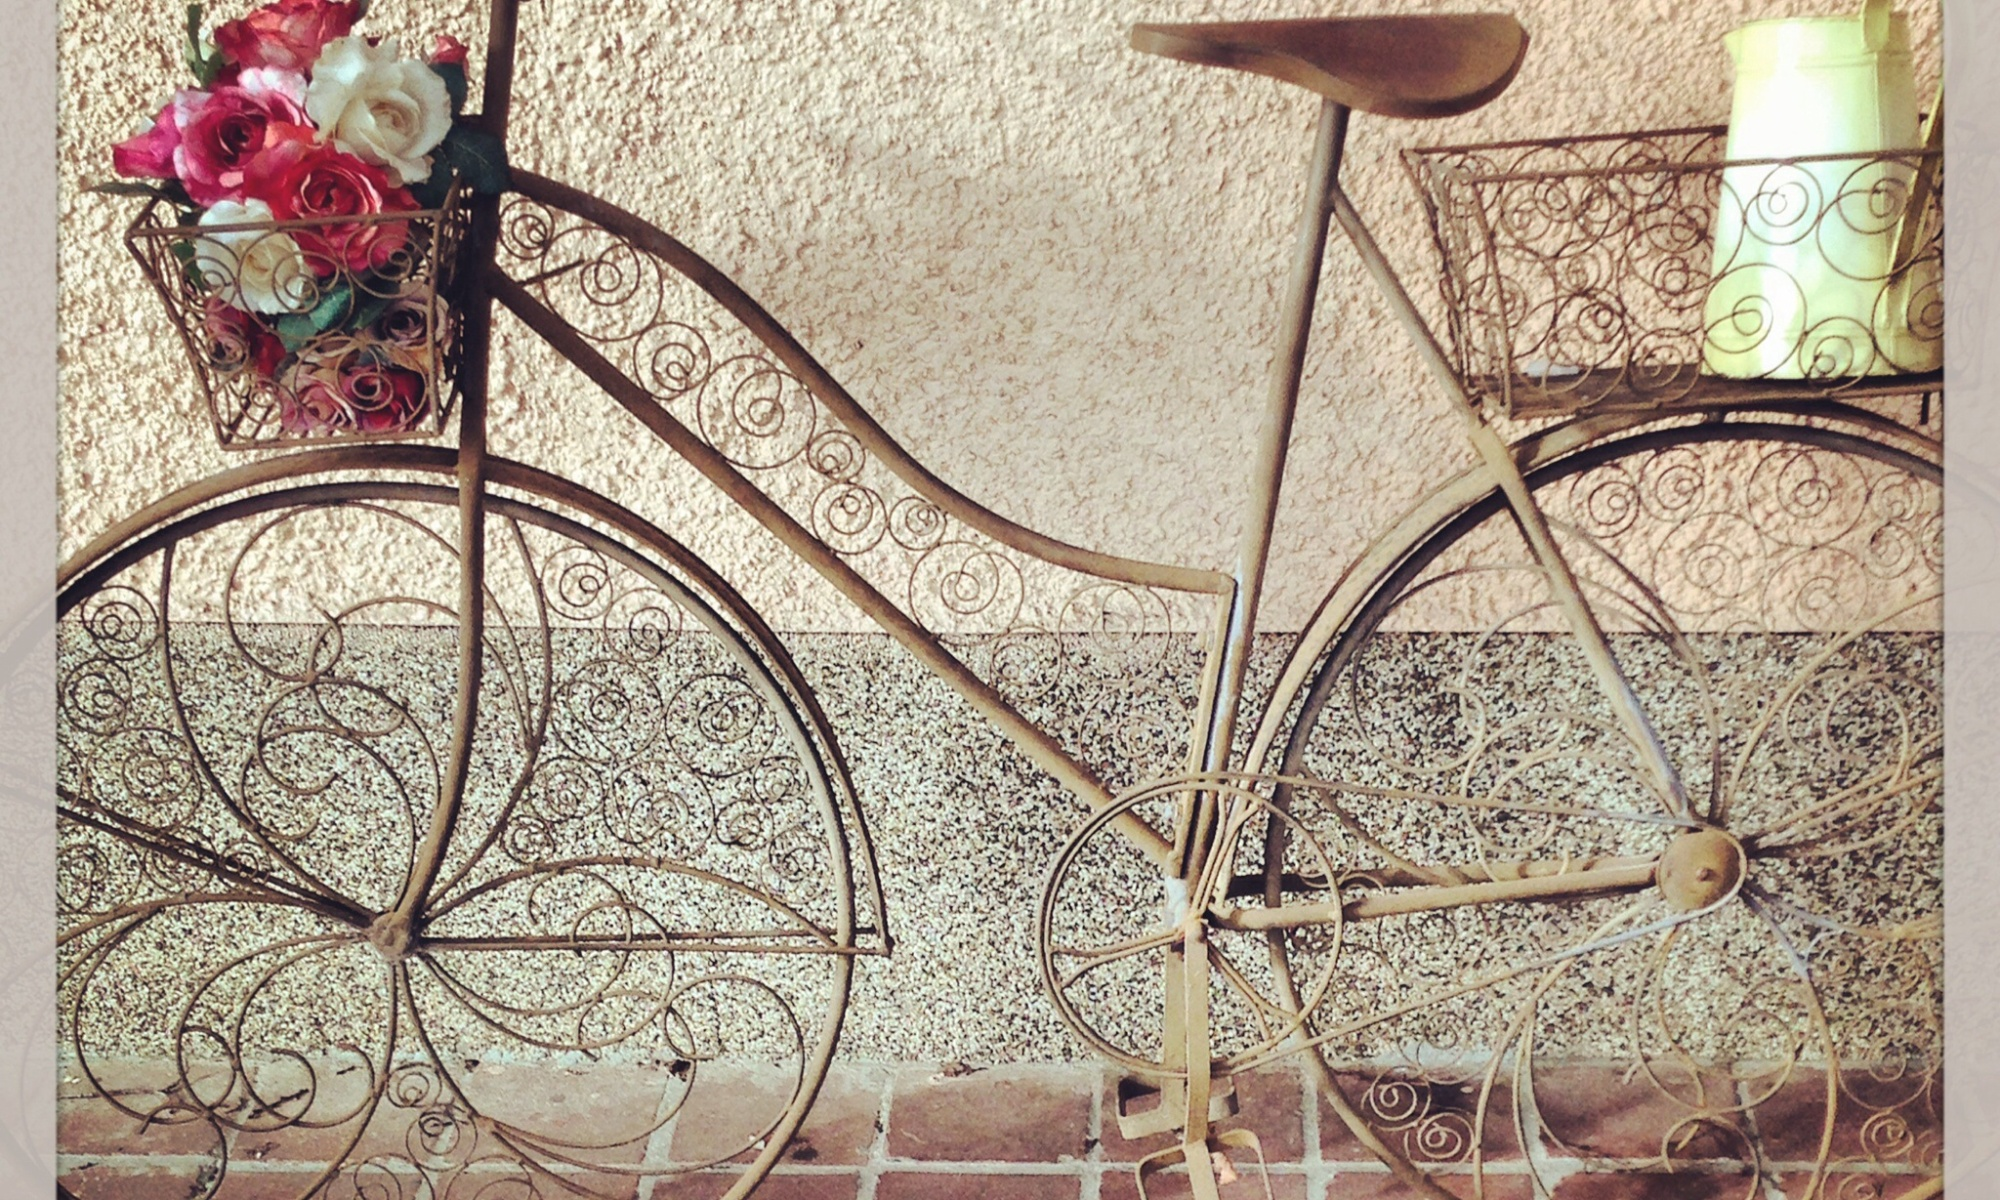 Vintage bike in Bright